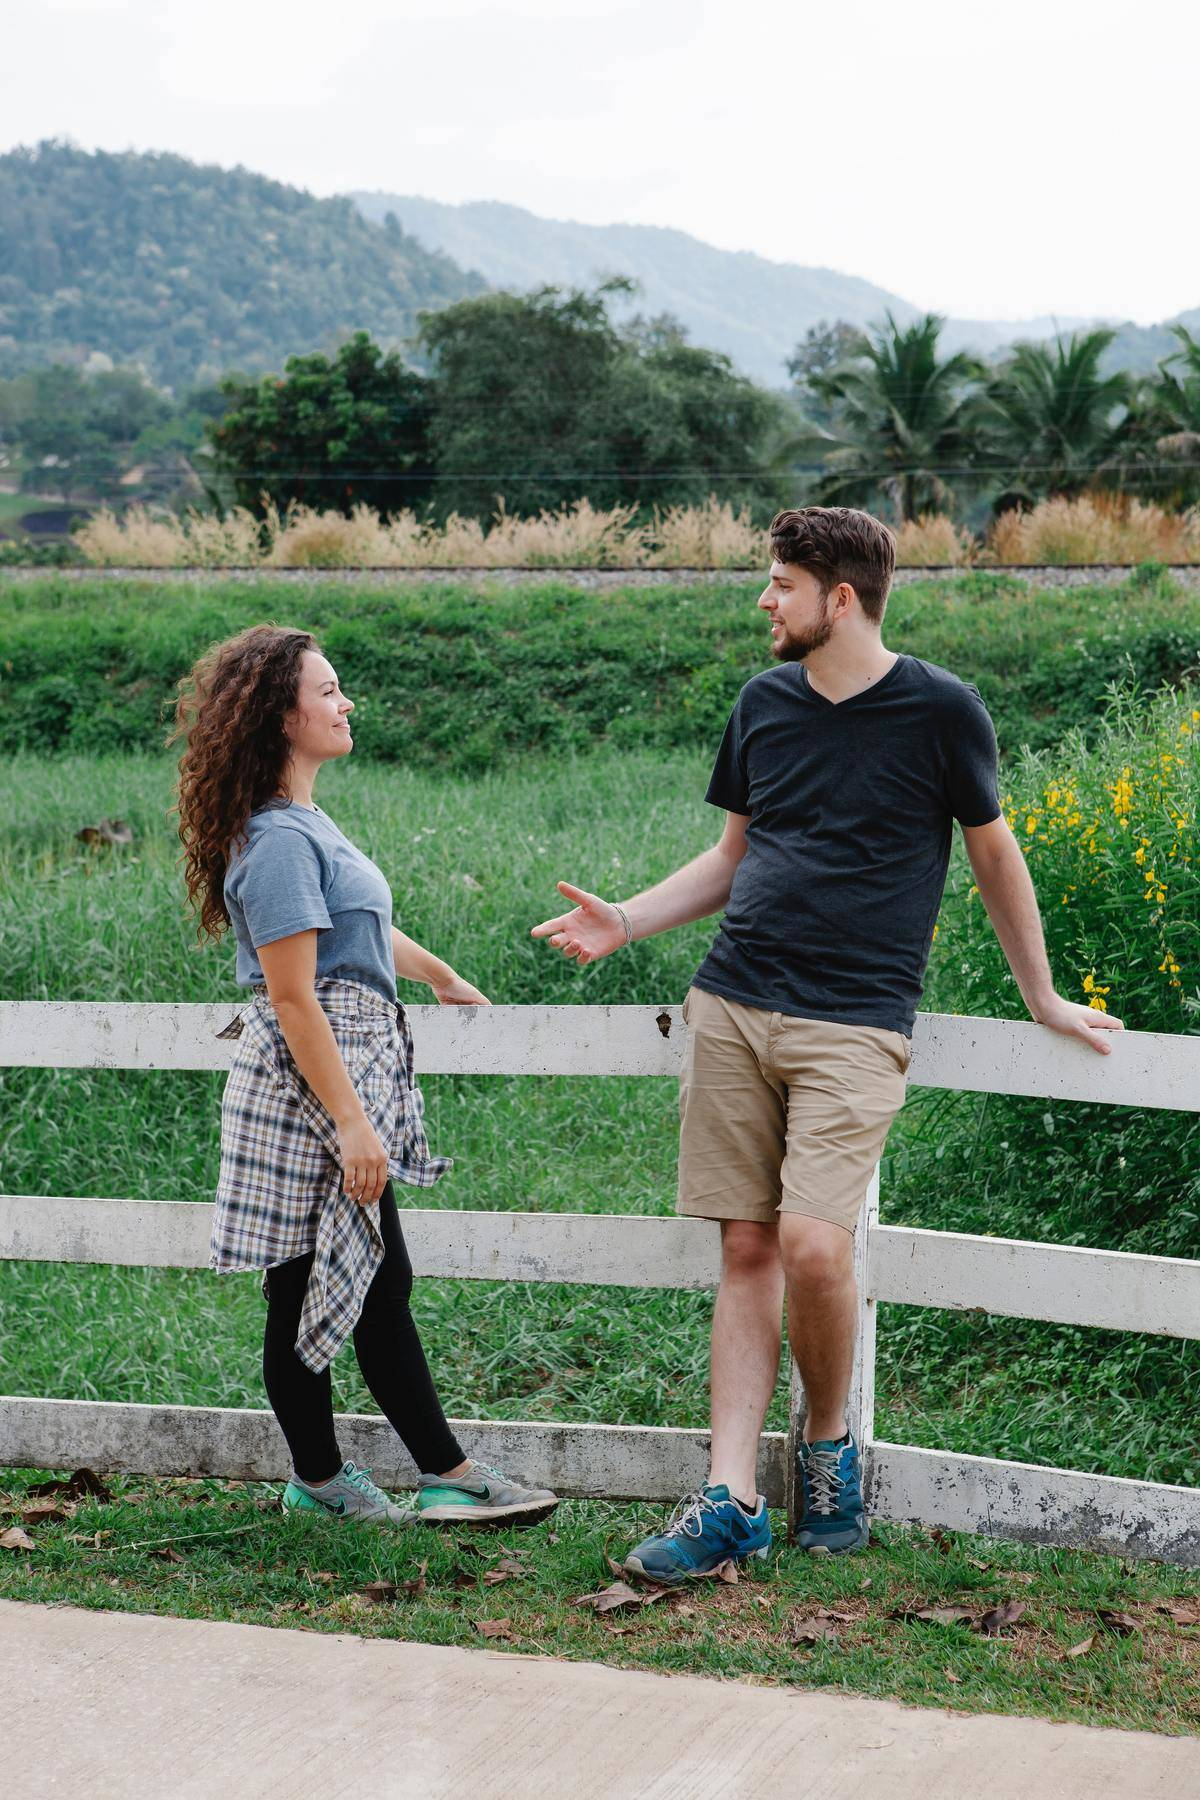 man talks to woman as they stand by a fence